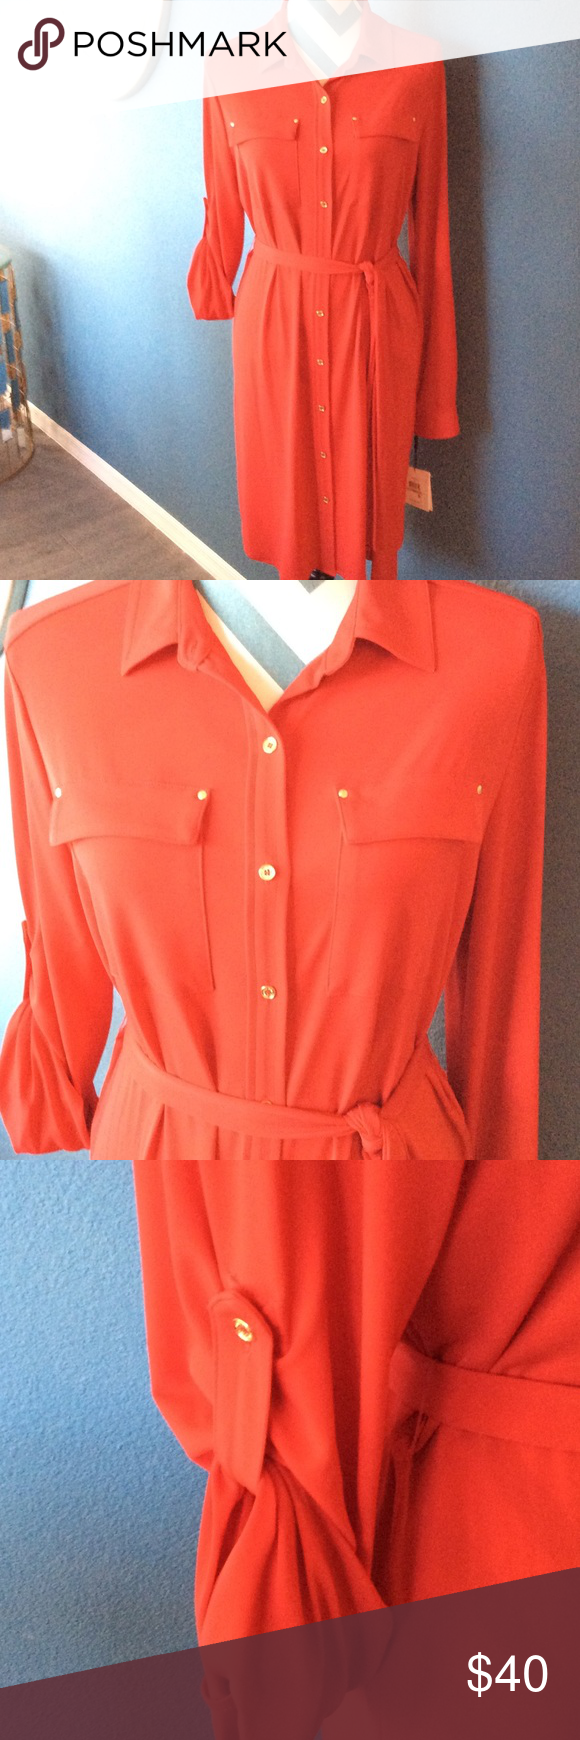 Calvin Klein NWT   Red Jersey Shirt Dress Calvin Klein new with tags red jersey shirt dress with gold studs and buttons belt around the waist long sleeves that can be adjusted to three-quarter sleeves a great dress for office and after. Calvin Klein Dresses Long Sleeve